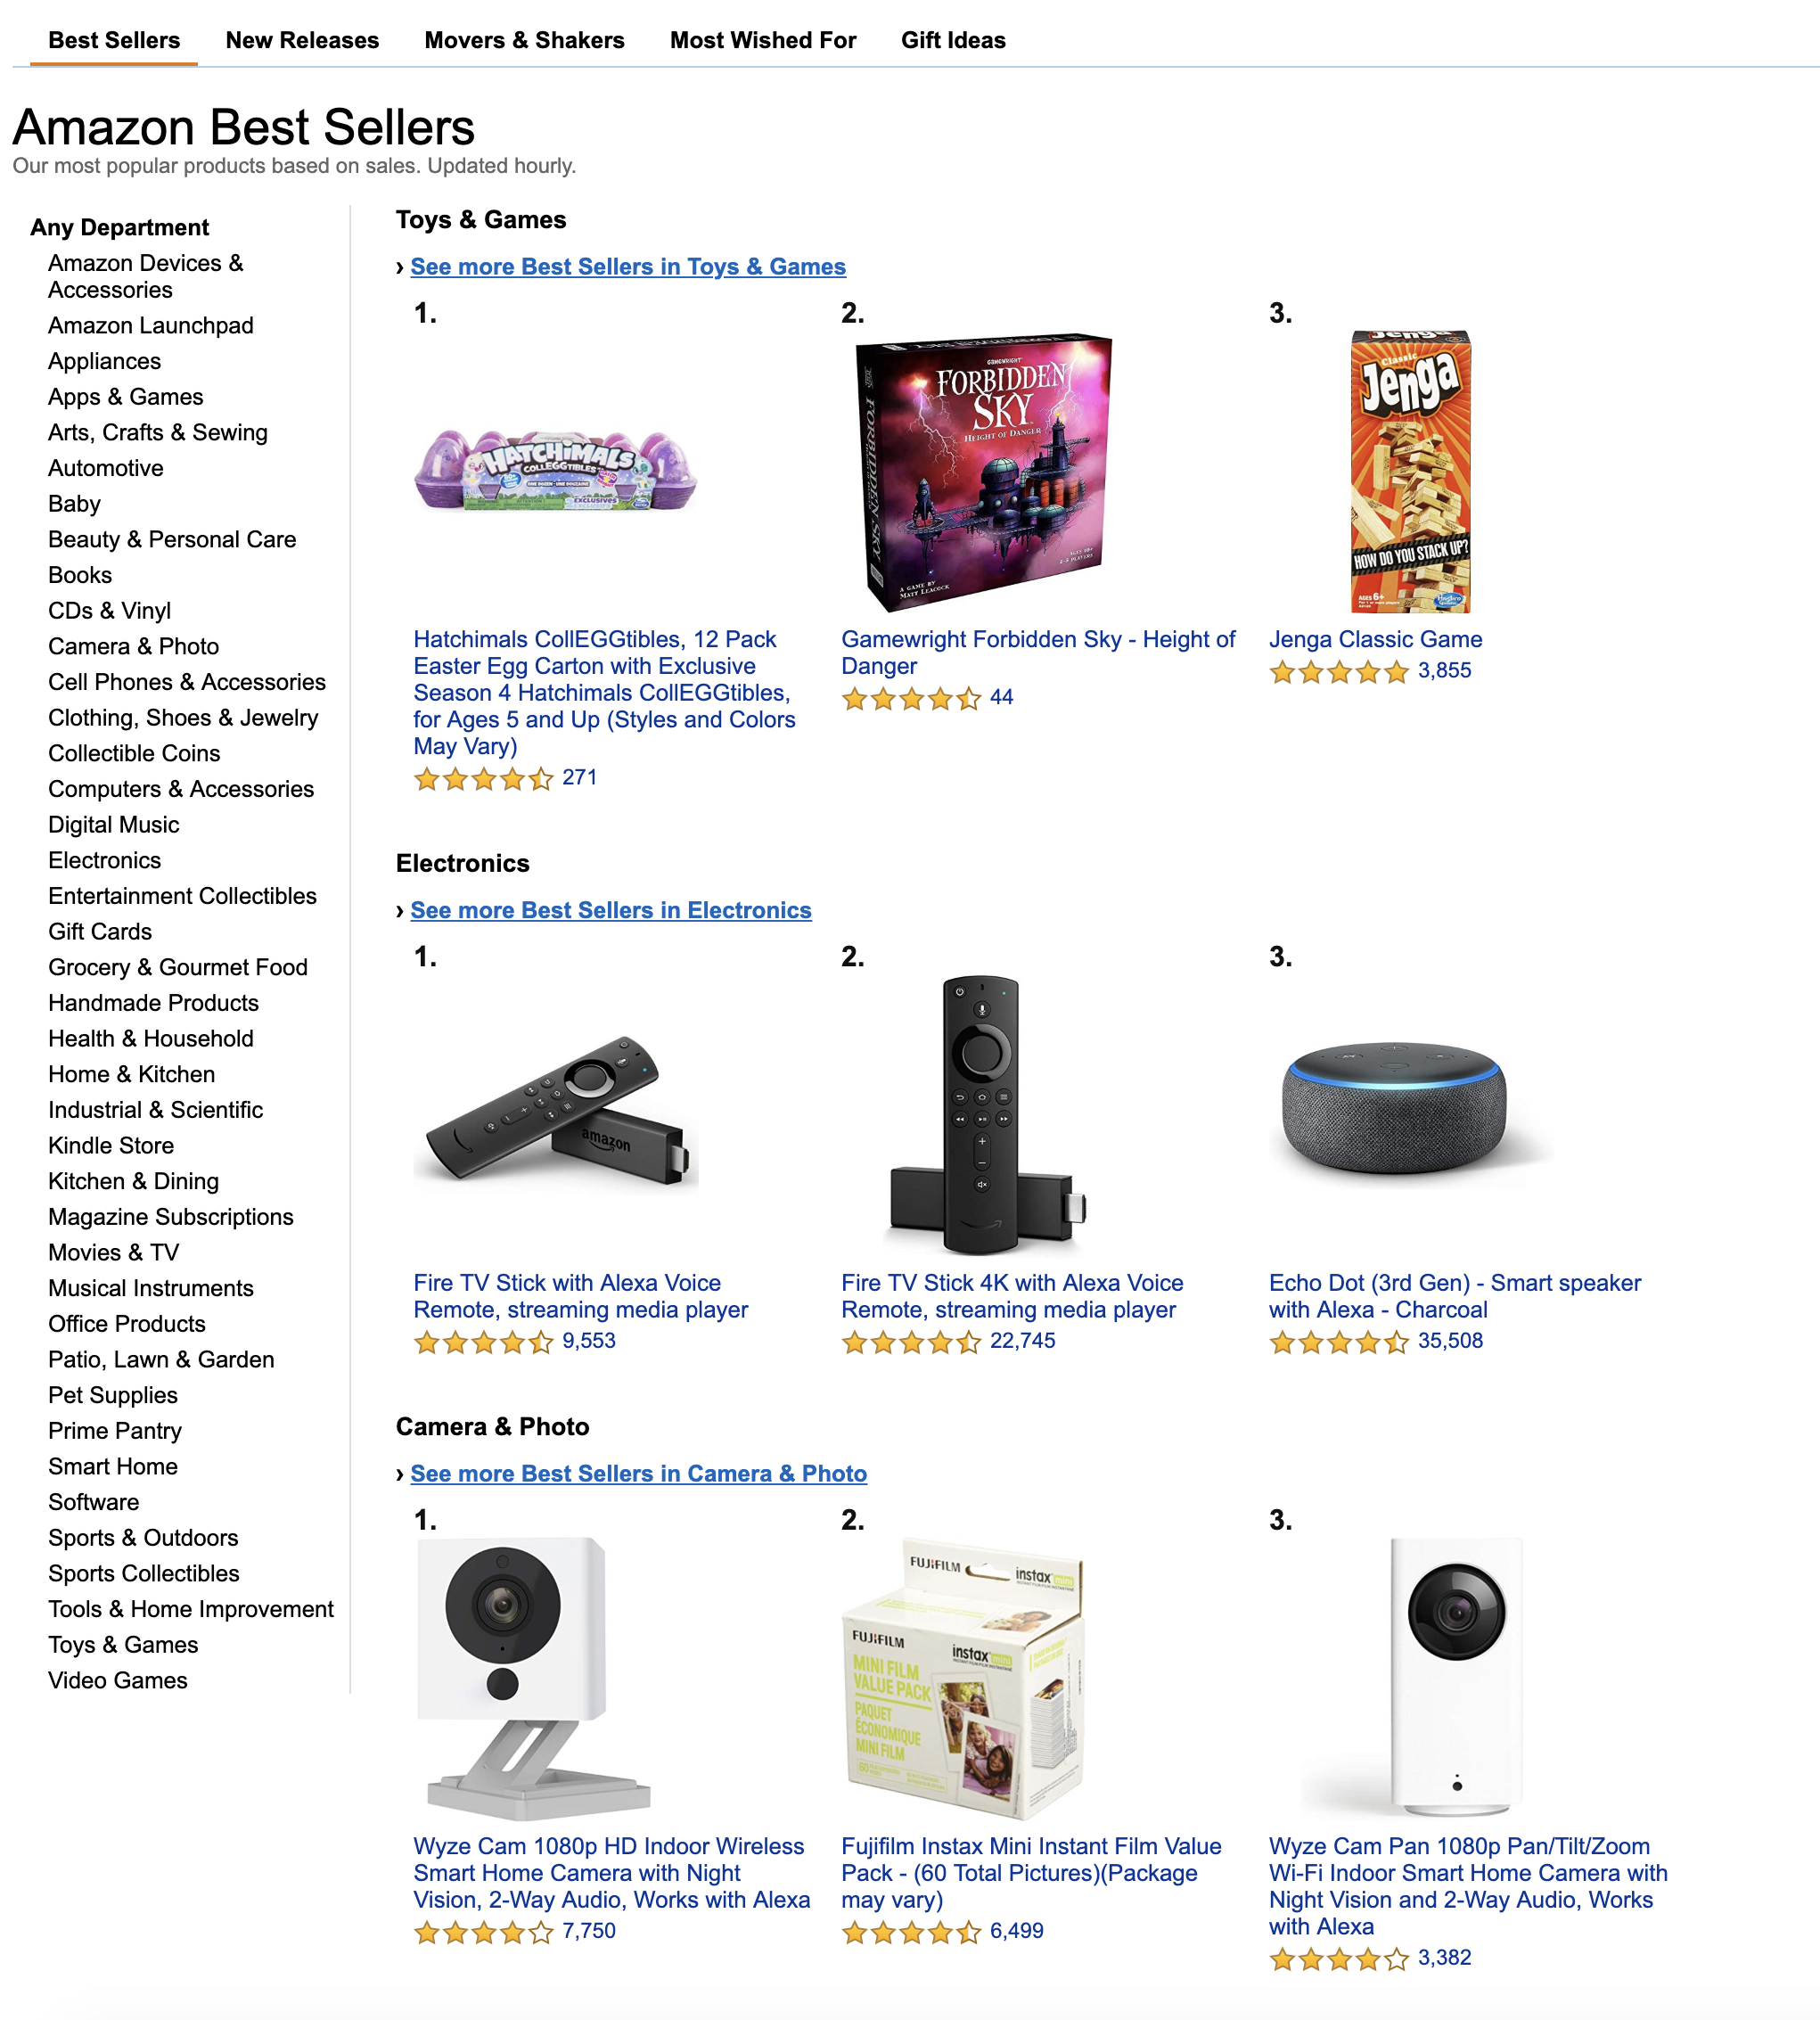 Amazon Best Sellers List